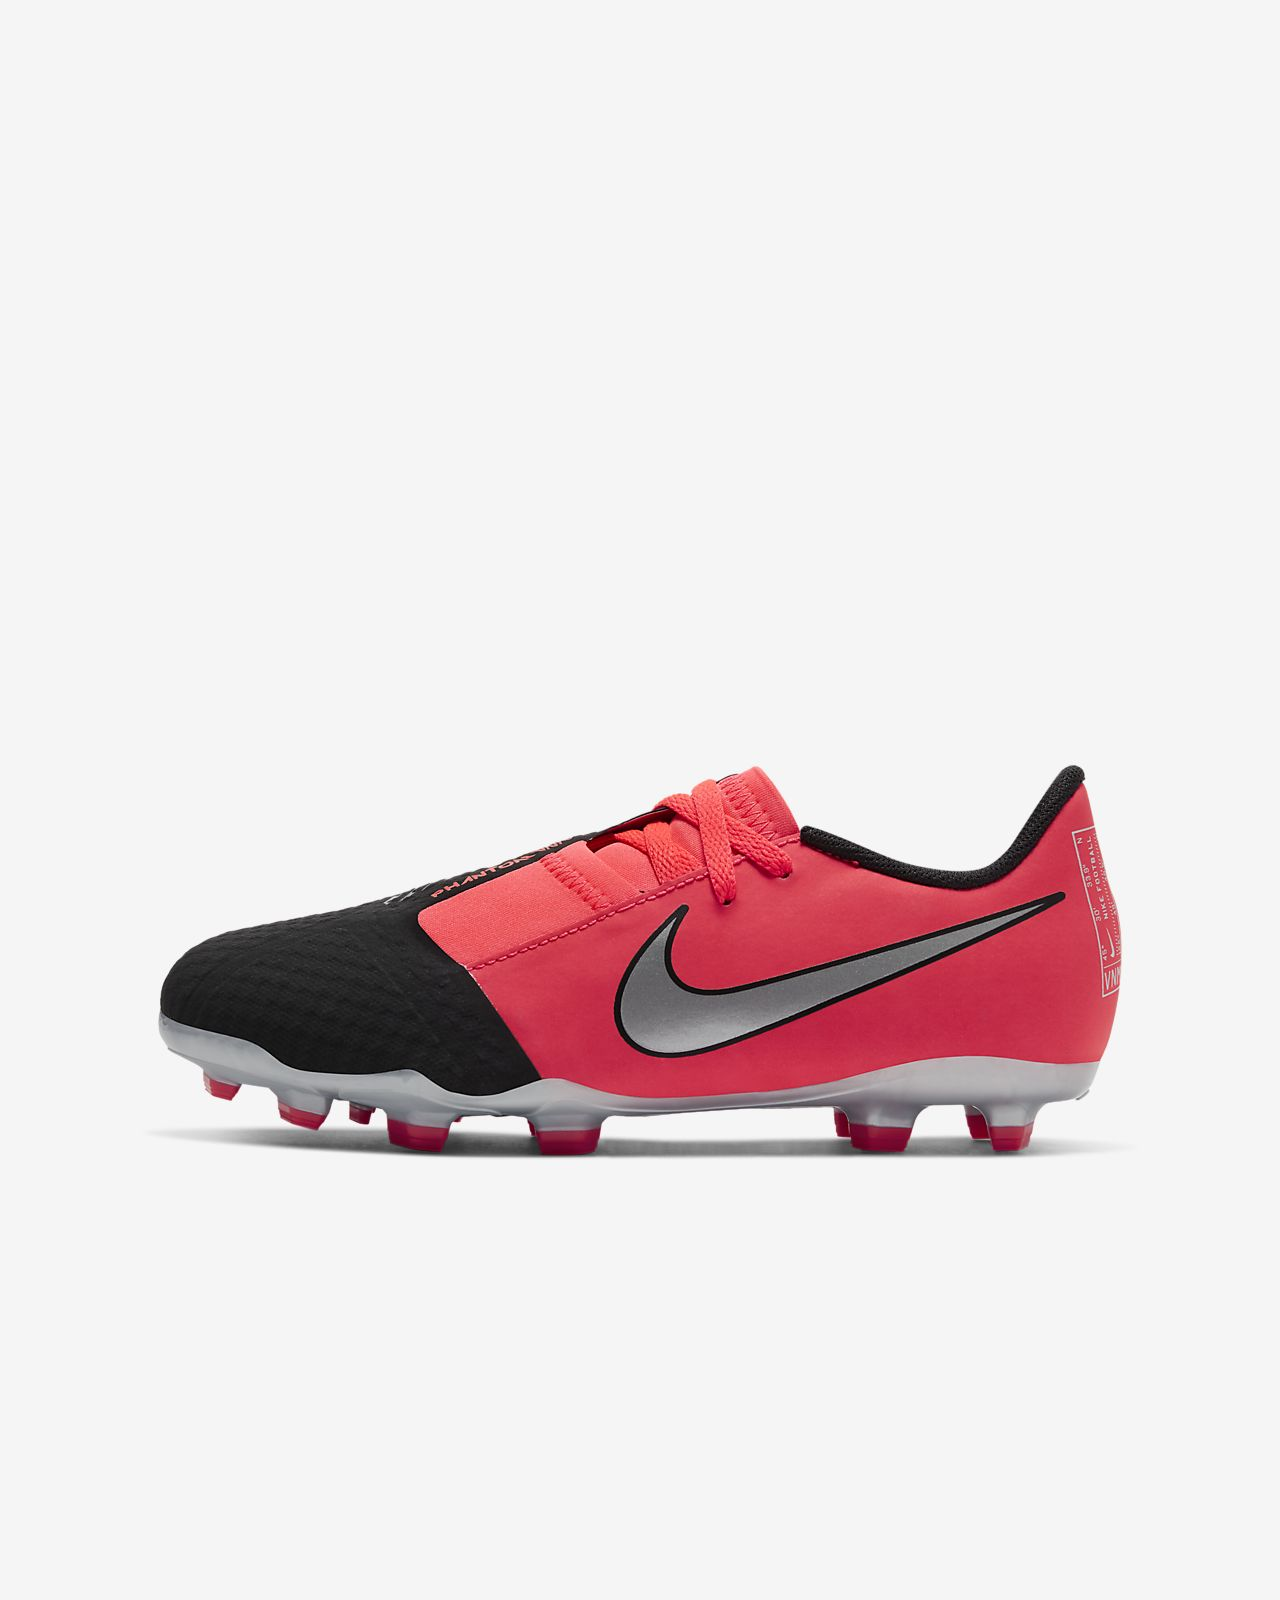 Nike Jr. Phantom Venom Academy FG fotballsko for gress til store barn